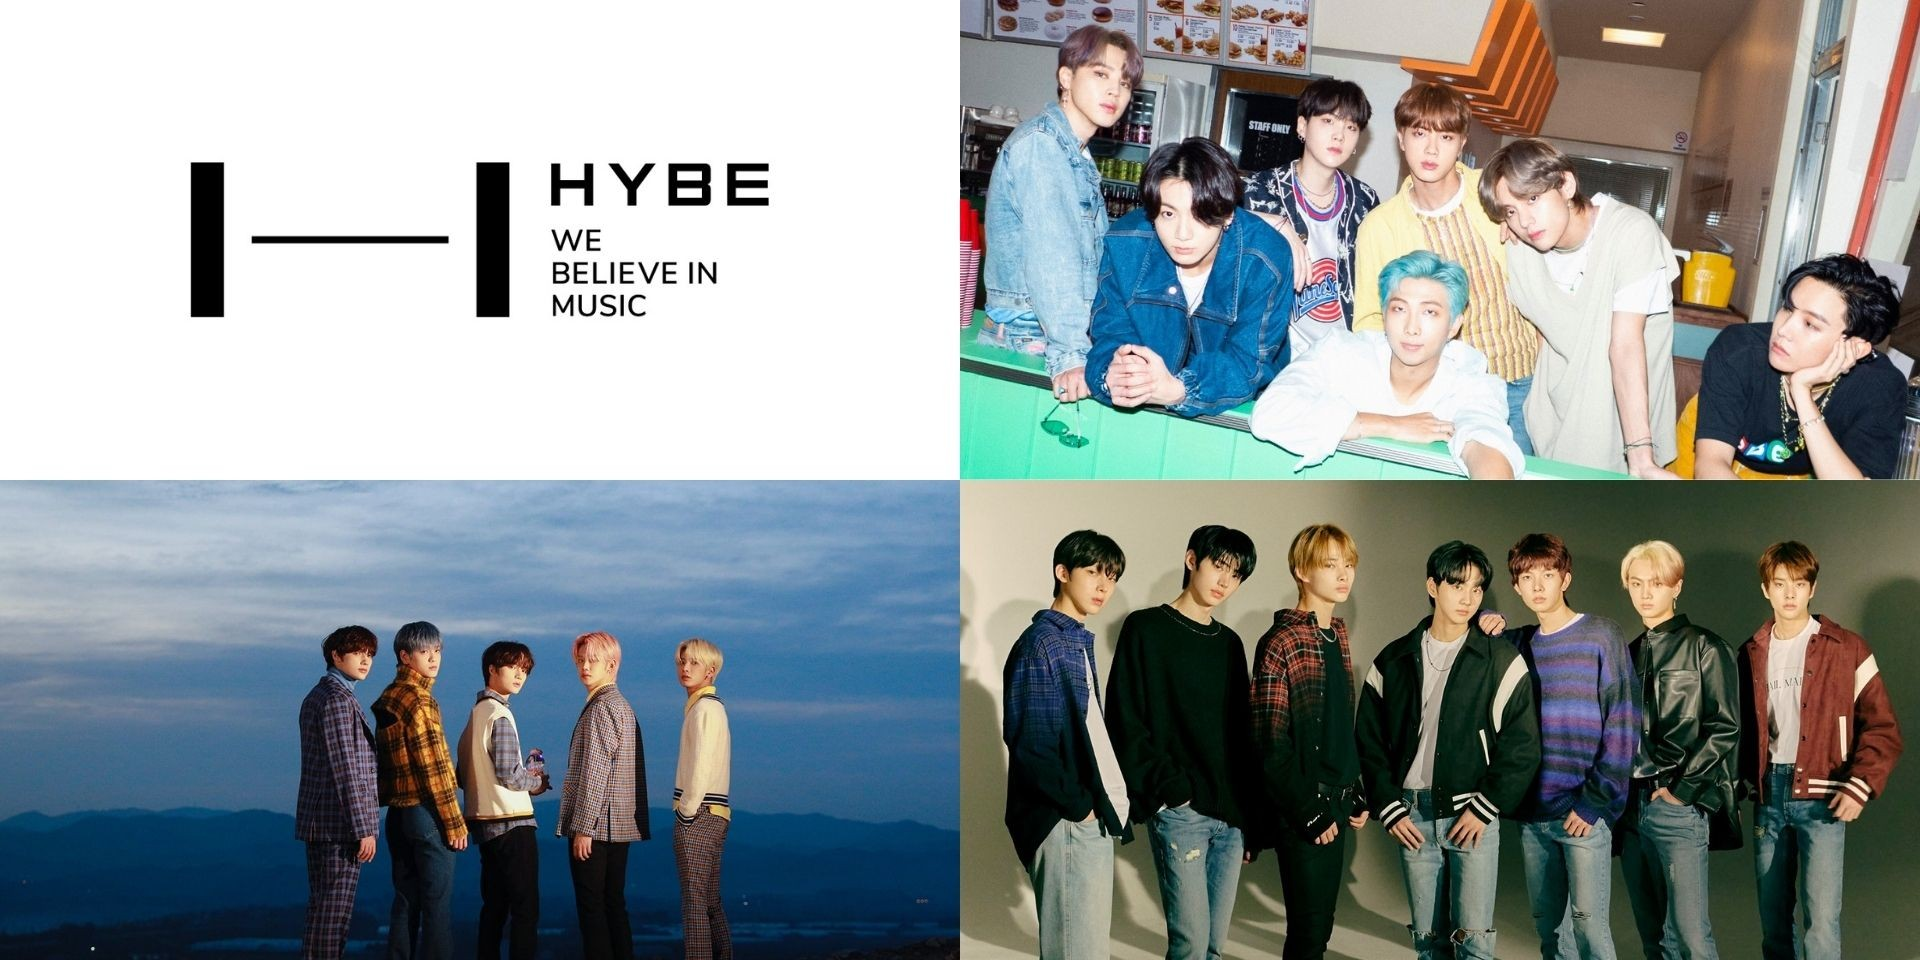 HYBE records more than 178 billion won in Q1 sales, 29% increase from 2020